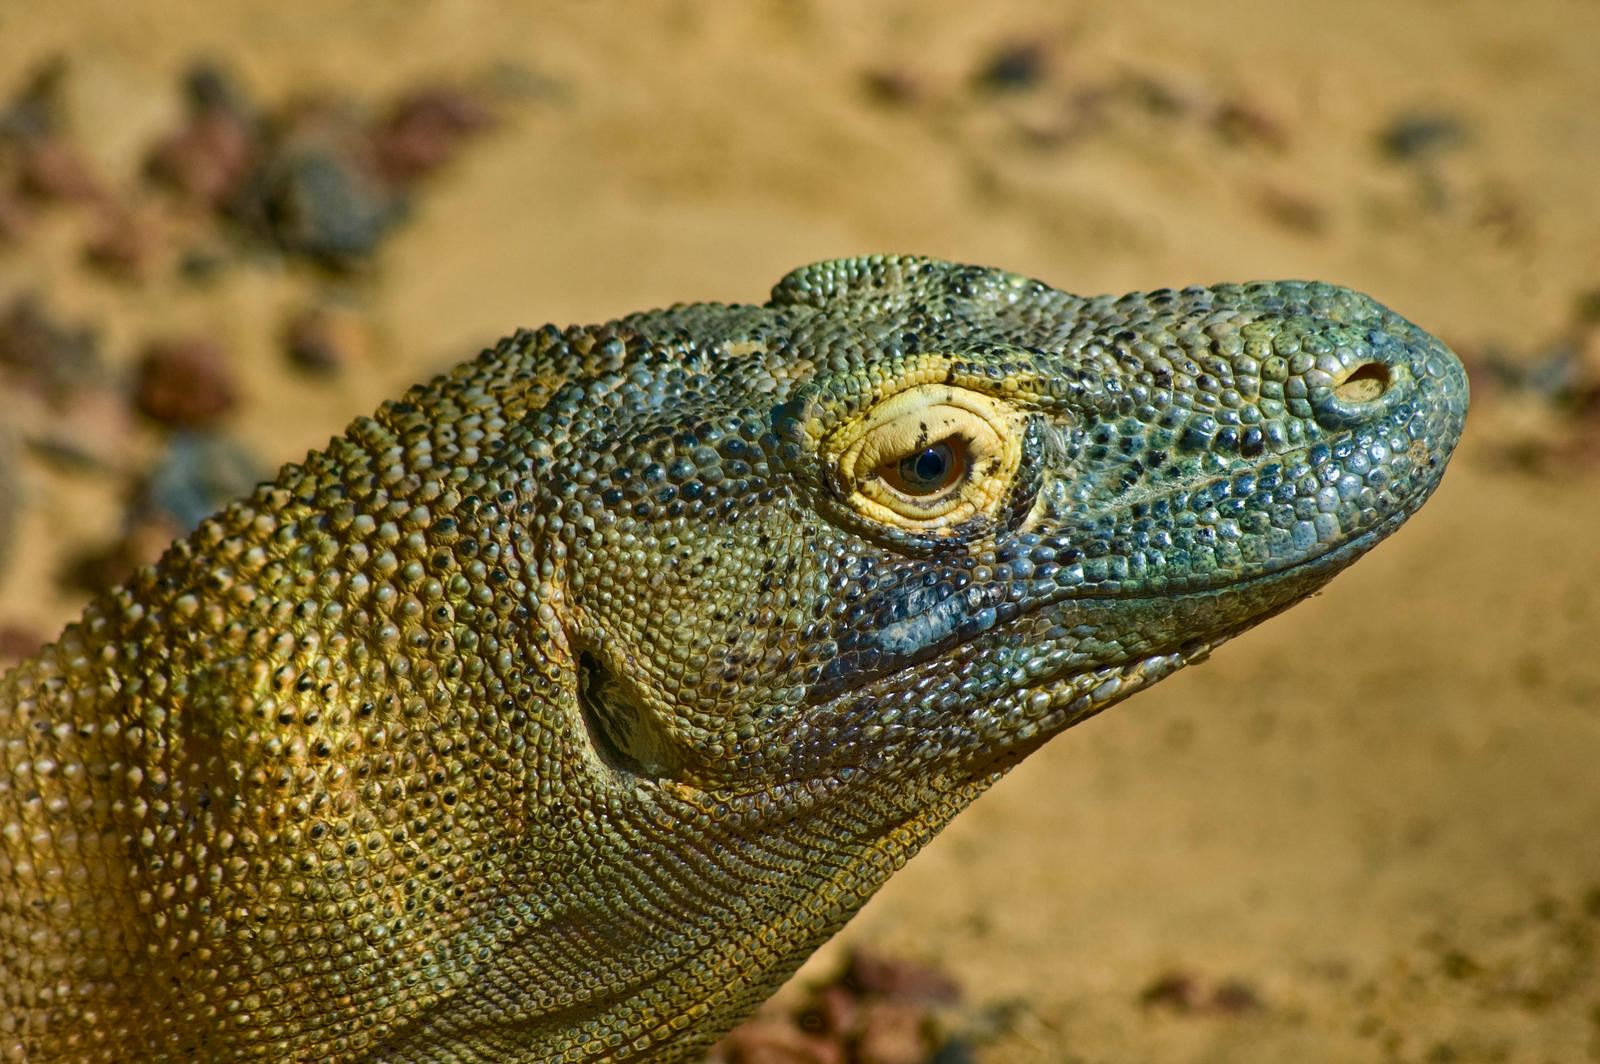 Komodo Dragon Close-up Face by AquaVixie